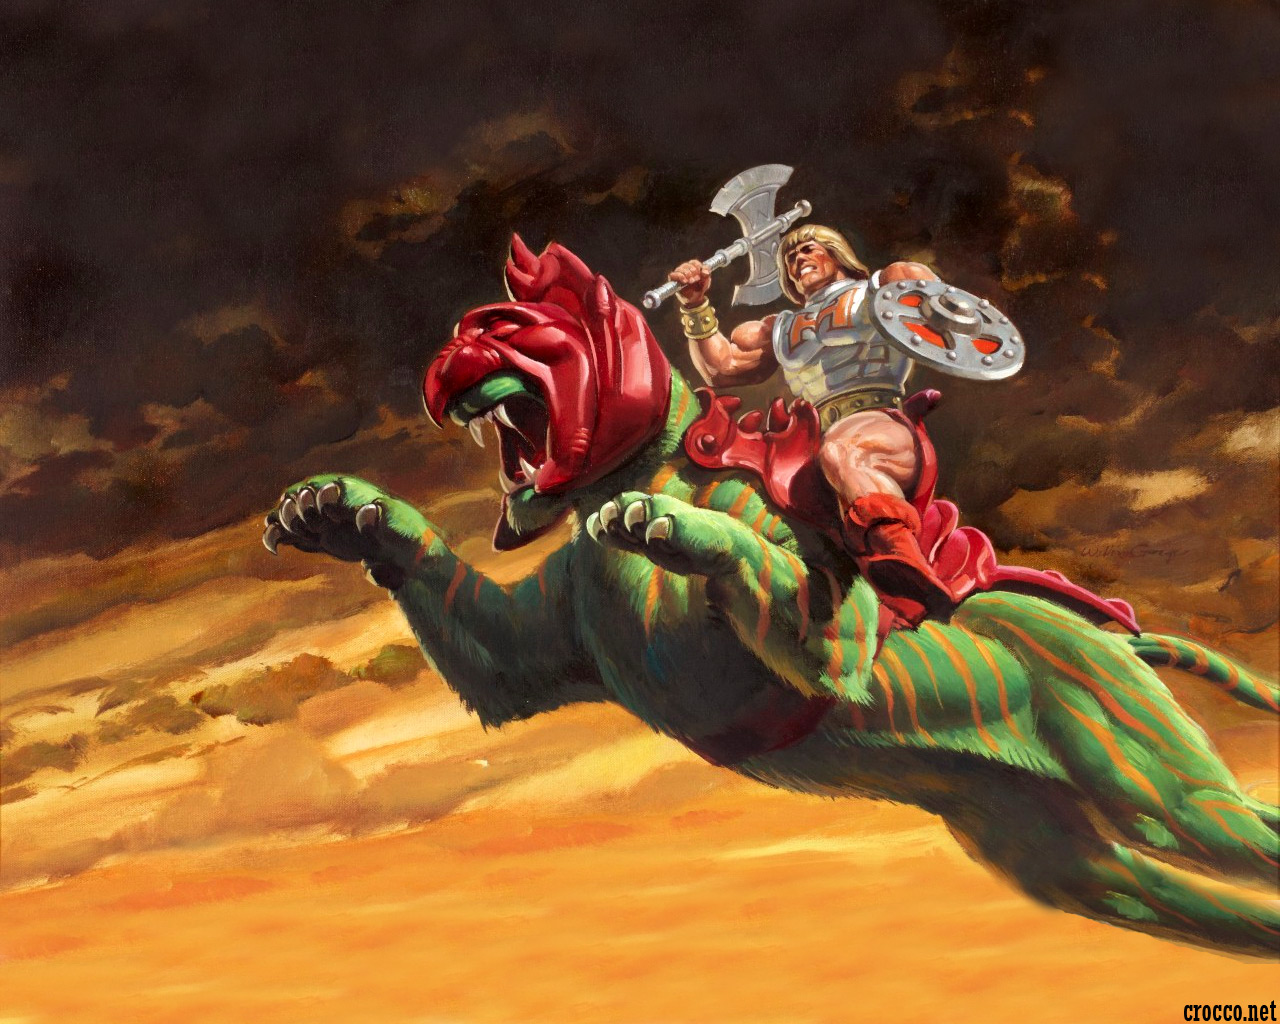 http://1.bp.blogspot.com/-zBUH8jDOprs/ToX0bsXvV5I/AAAAAAAABR8/cB6hNqapQRk/s1600/He-Man-High-Resolution-wallpapers.stillmaza.com-4.jpg